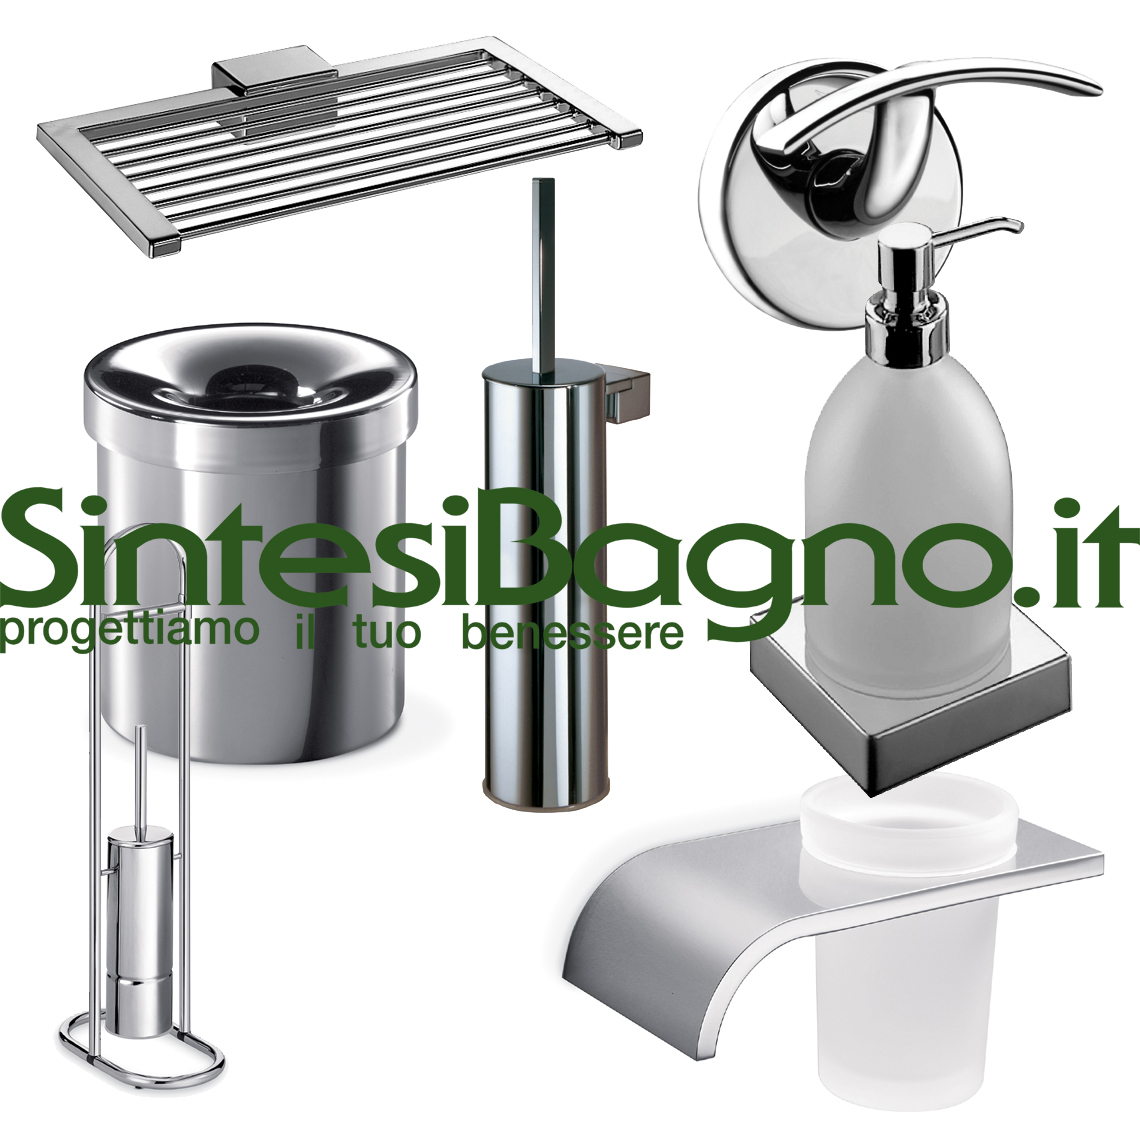 Catalogo Inda Accessori Bagno.Sintesibagno It Accessori Accessori E Complementi Per L